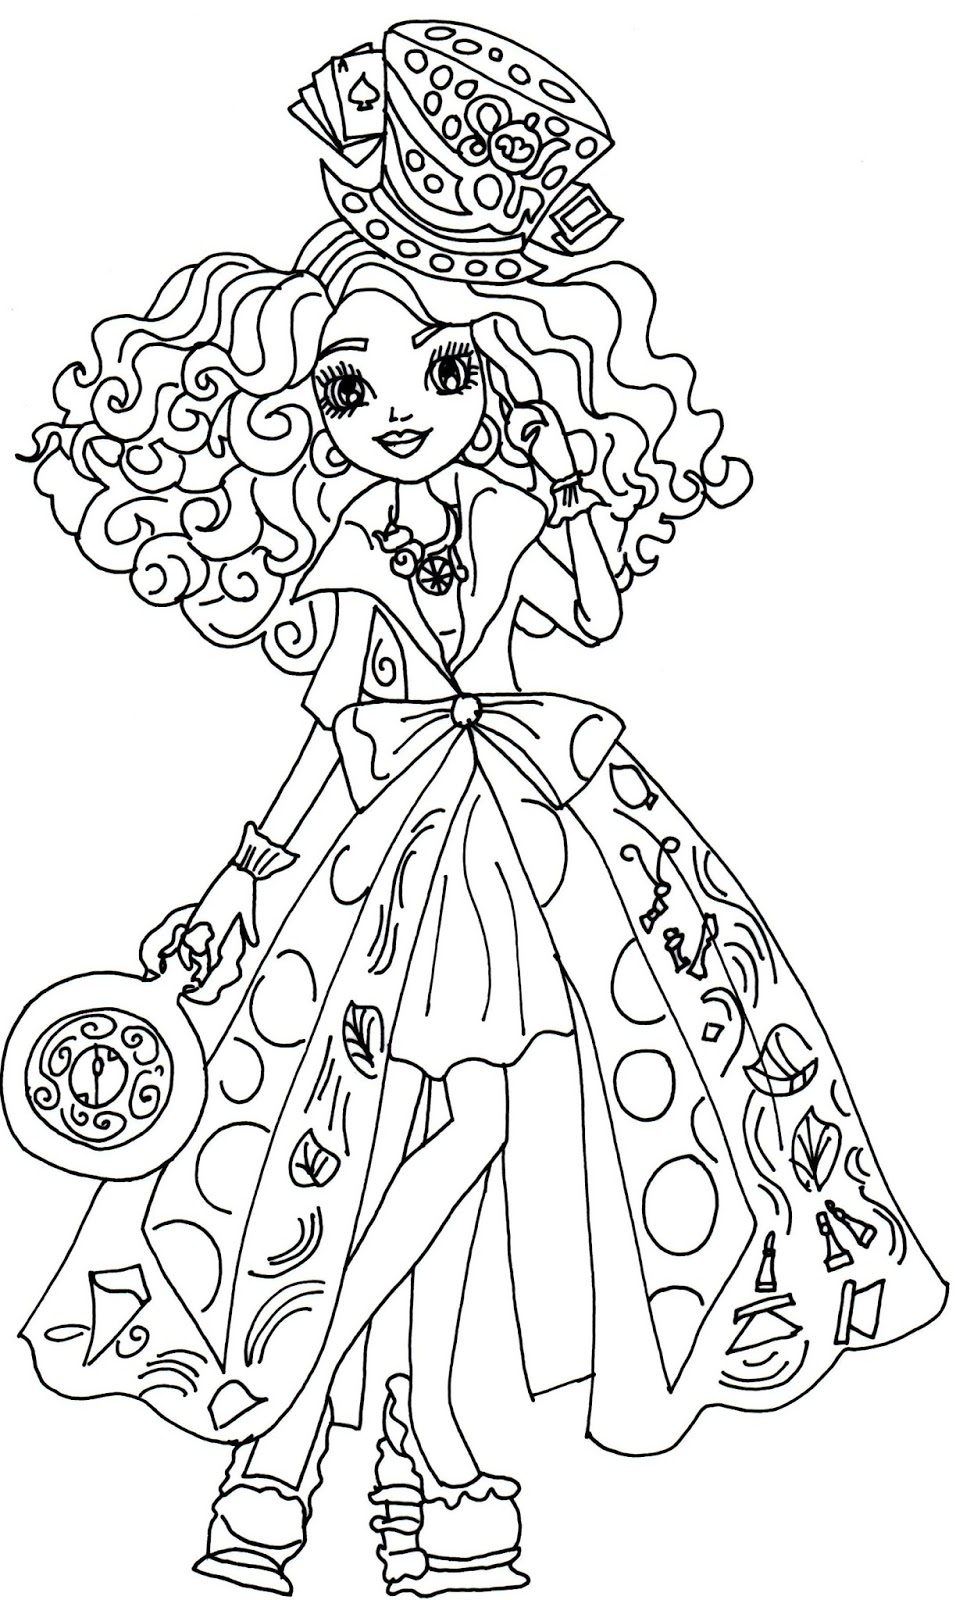 Ever After High Coloring Pages - Best Coloring Pages For Kids | free coloring pages printable